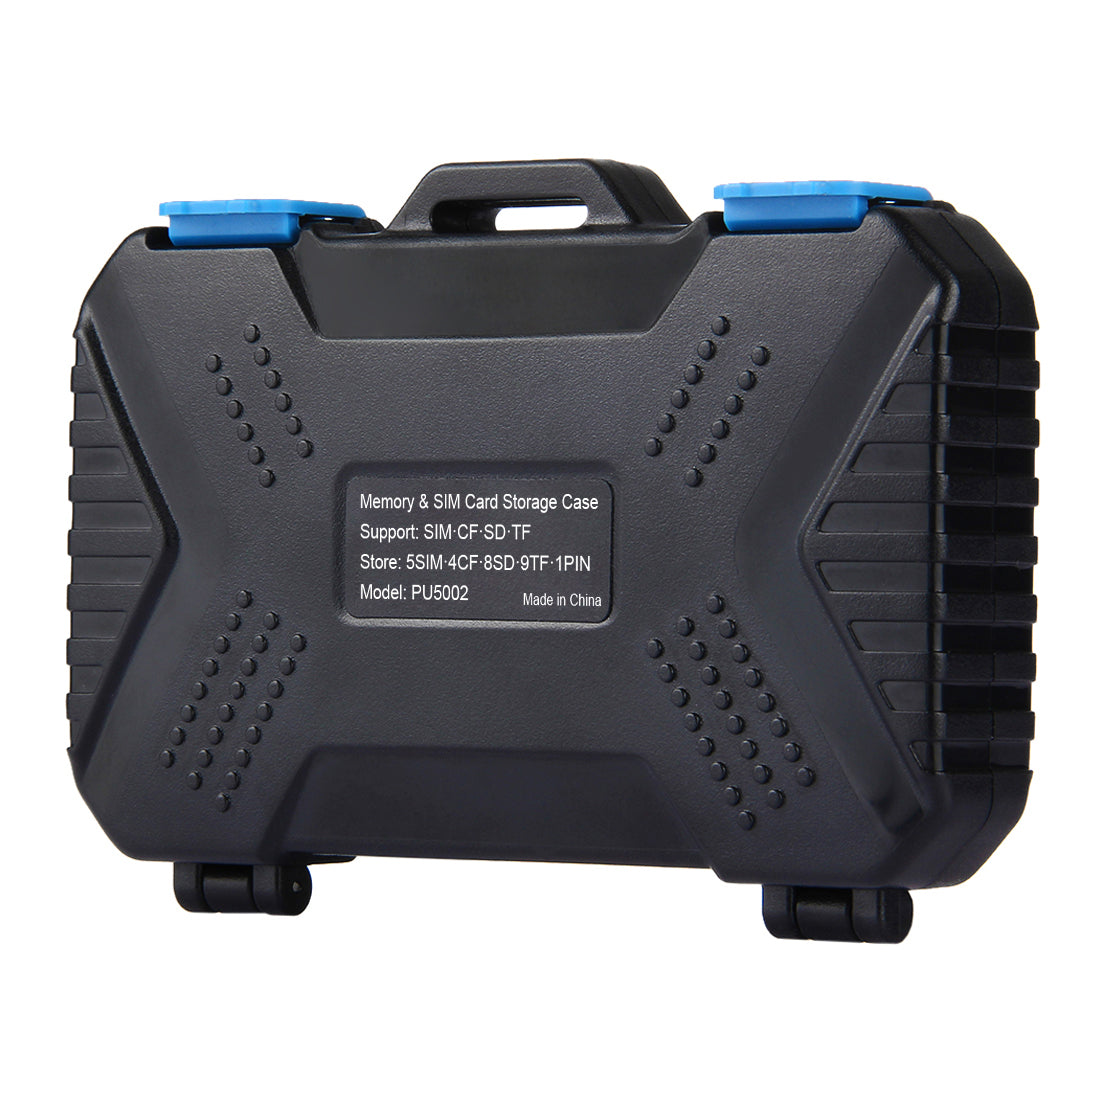 PULUZ PU5002 27 in 1 Waterproof Camera Memory Card Case for CF SD TF Card PIN SIM Micro-SIM Nano-SIM